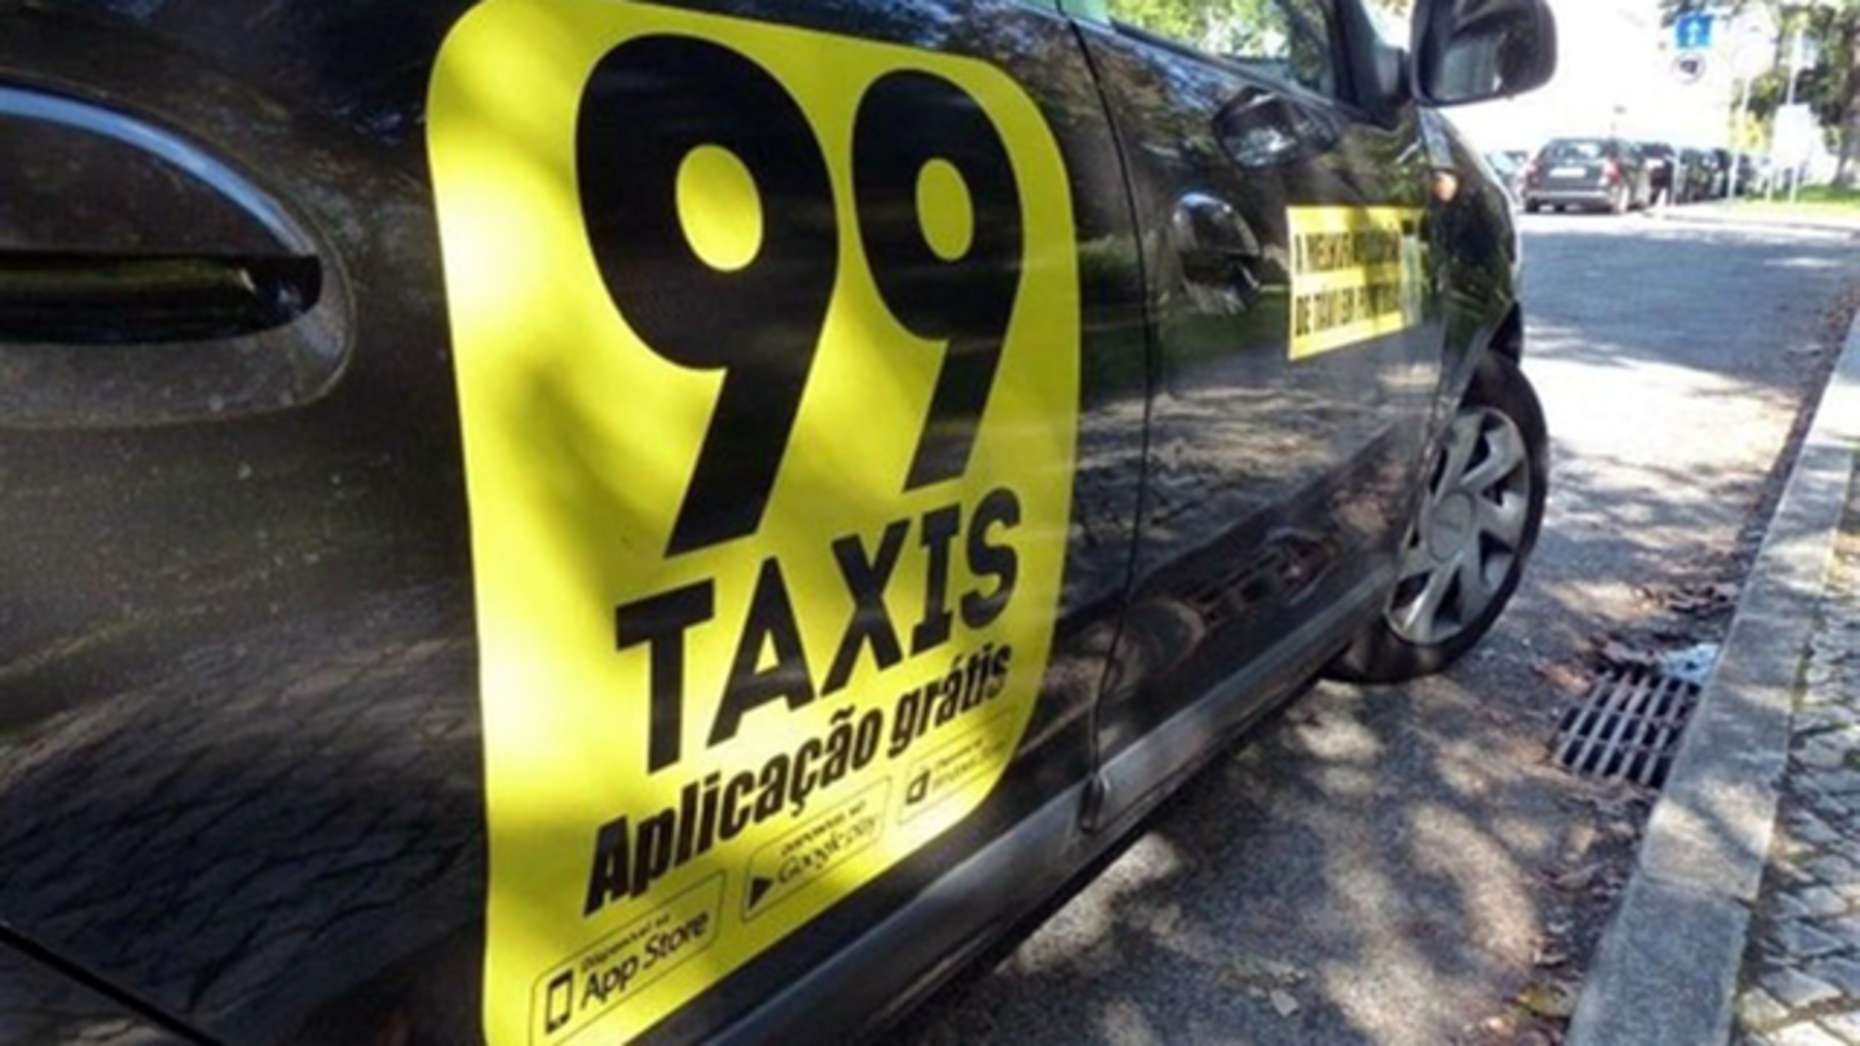 One of 99's taxis. Photo by Thetechnews.com